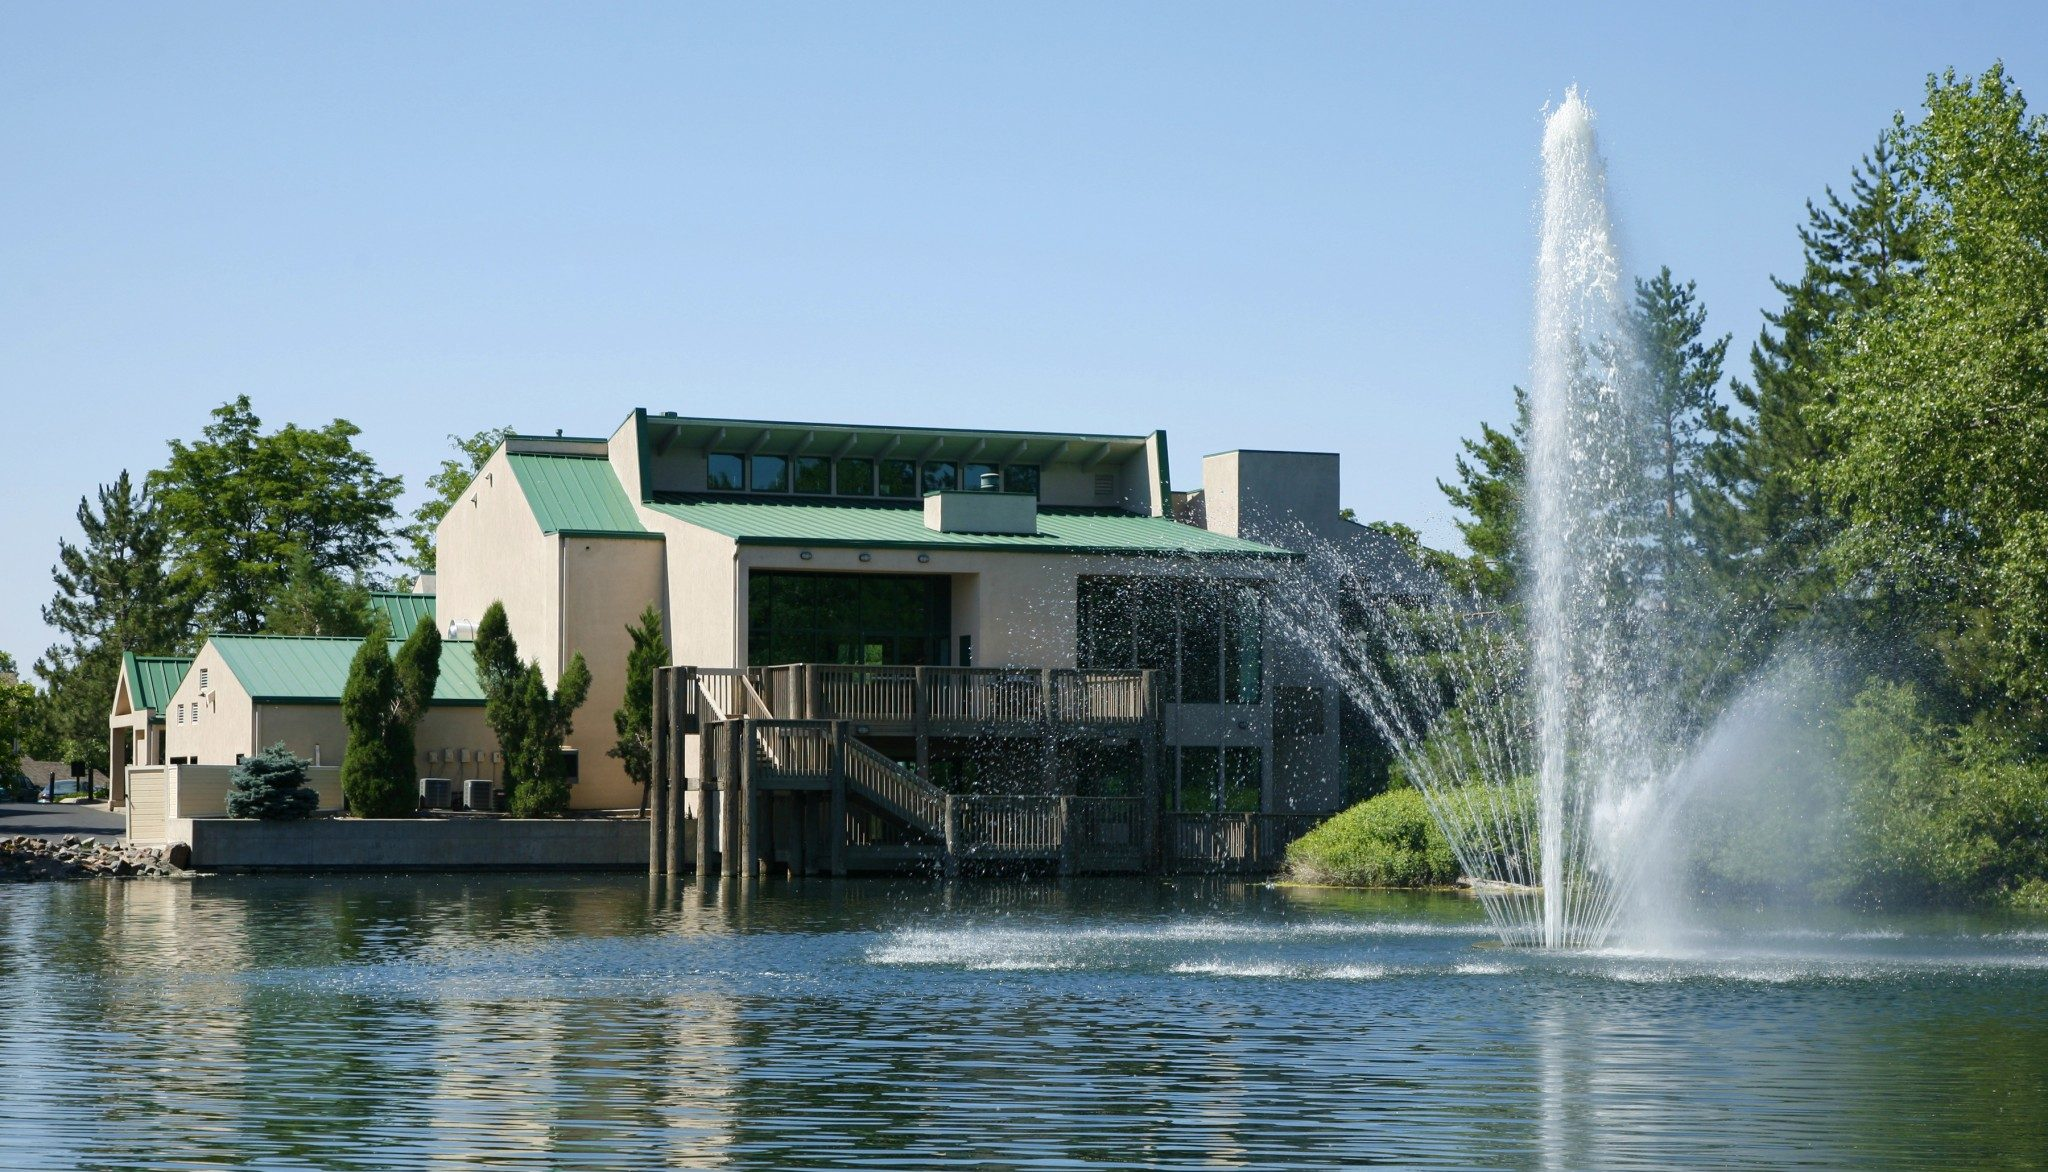 View of lake and fountain with building and trees in the background.